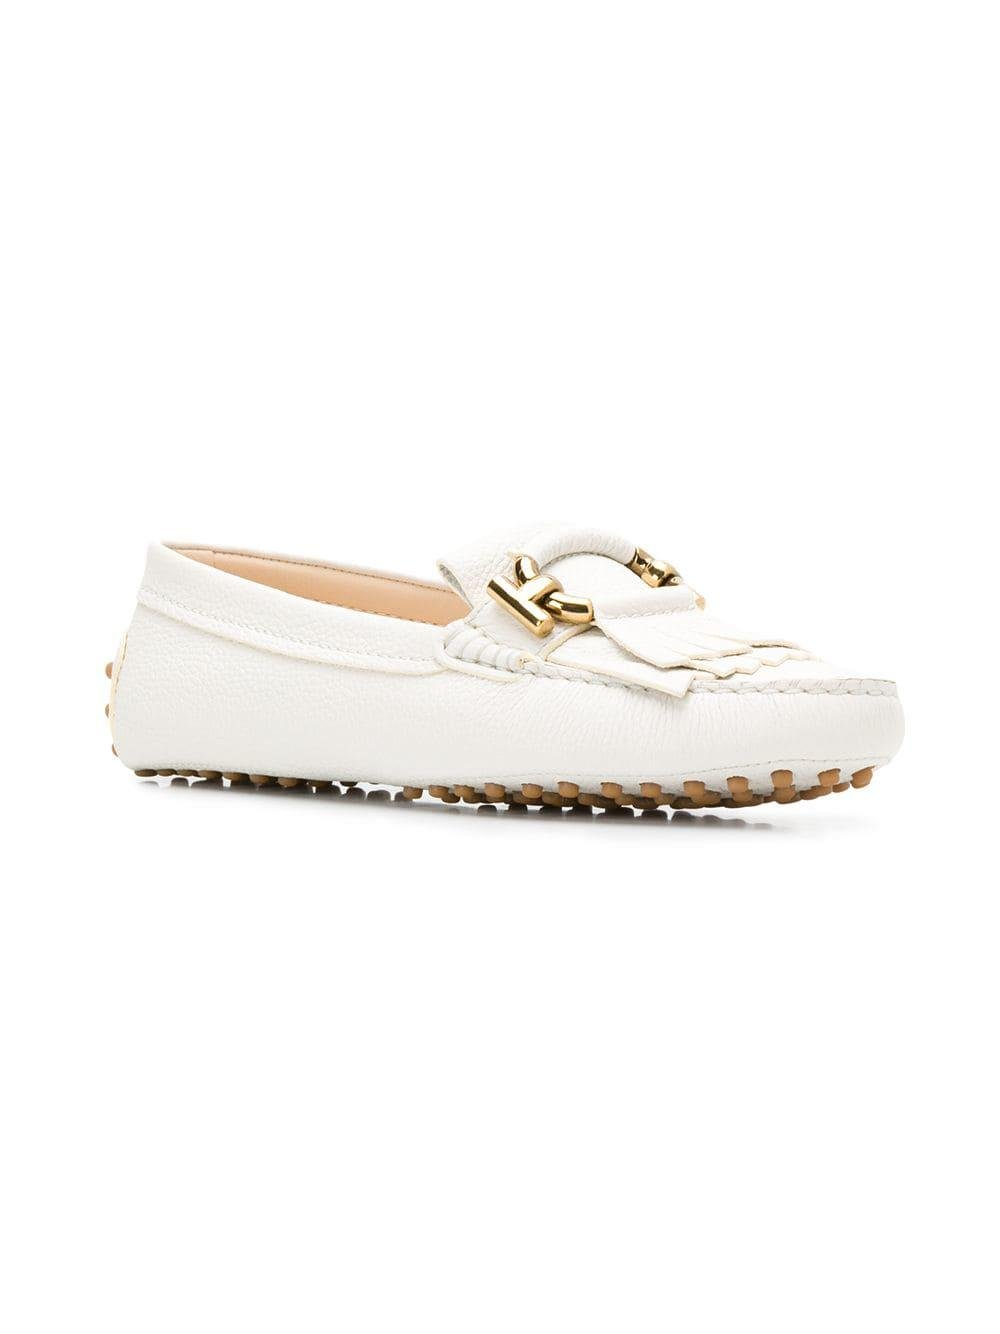 5af7413b09c Lyst - Tod s Gommino T Ring Loafers in White - Save 24%